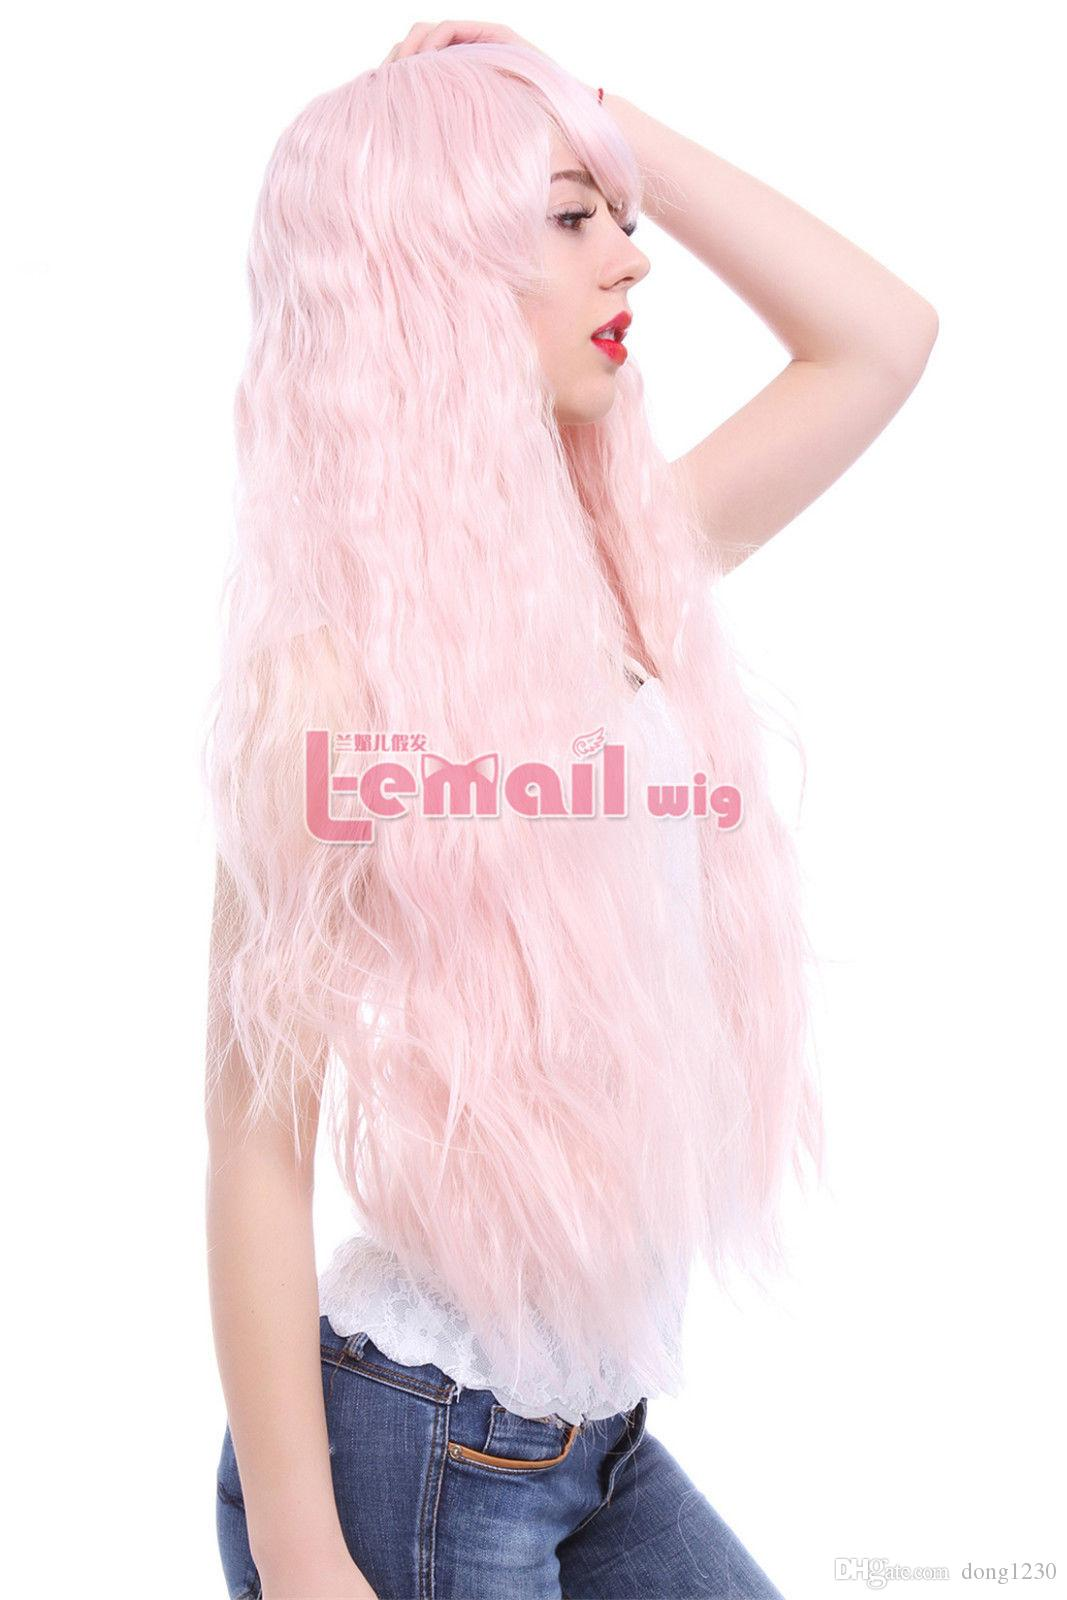 Girls Pretty Rhapsody Lolita Fluffy Long Curly Wave Full Hair Cospaly Wig